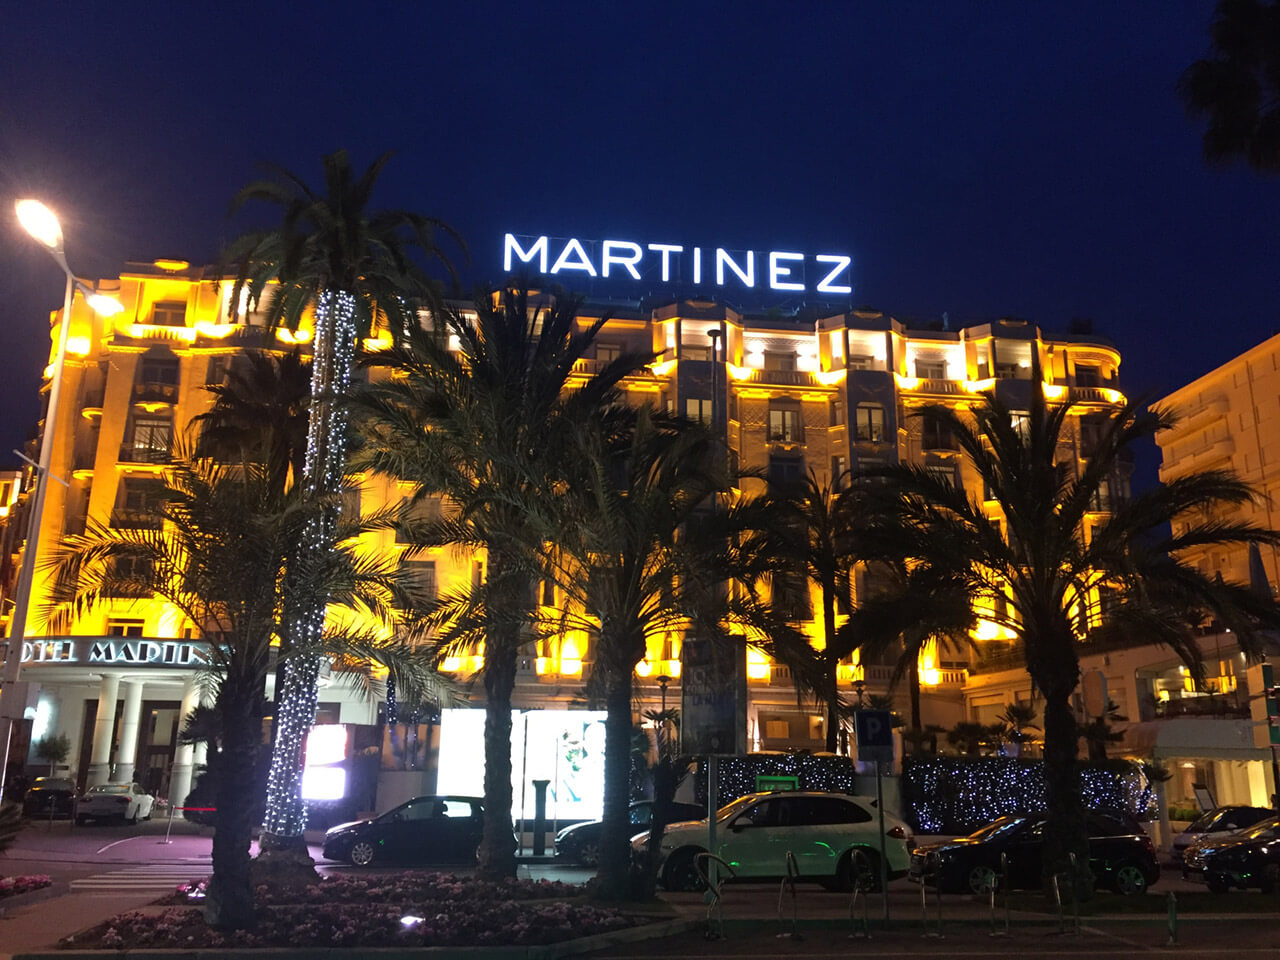 It's in the Cannes!